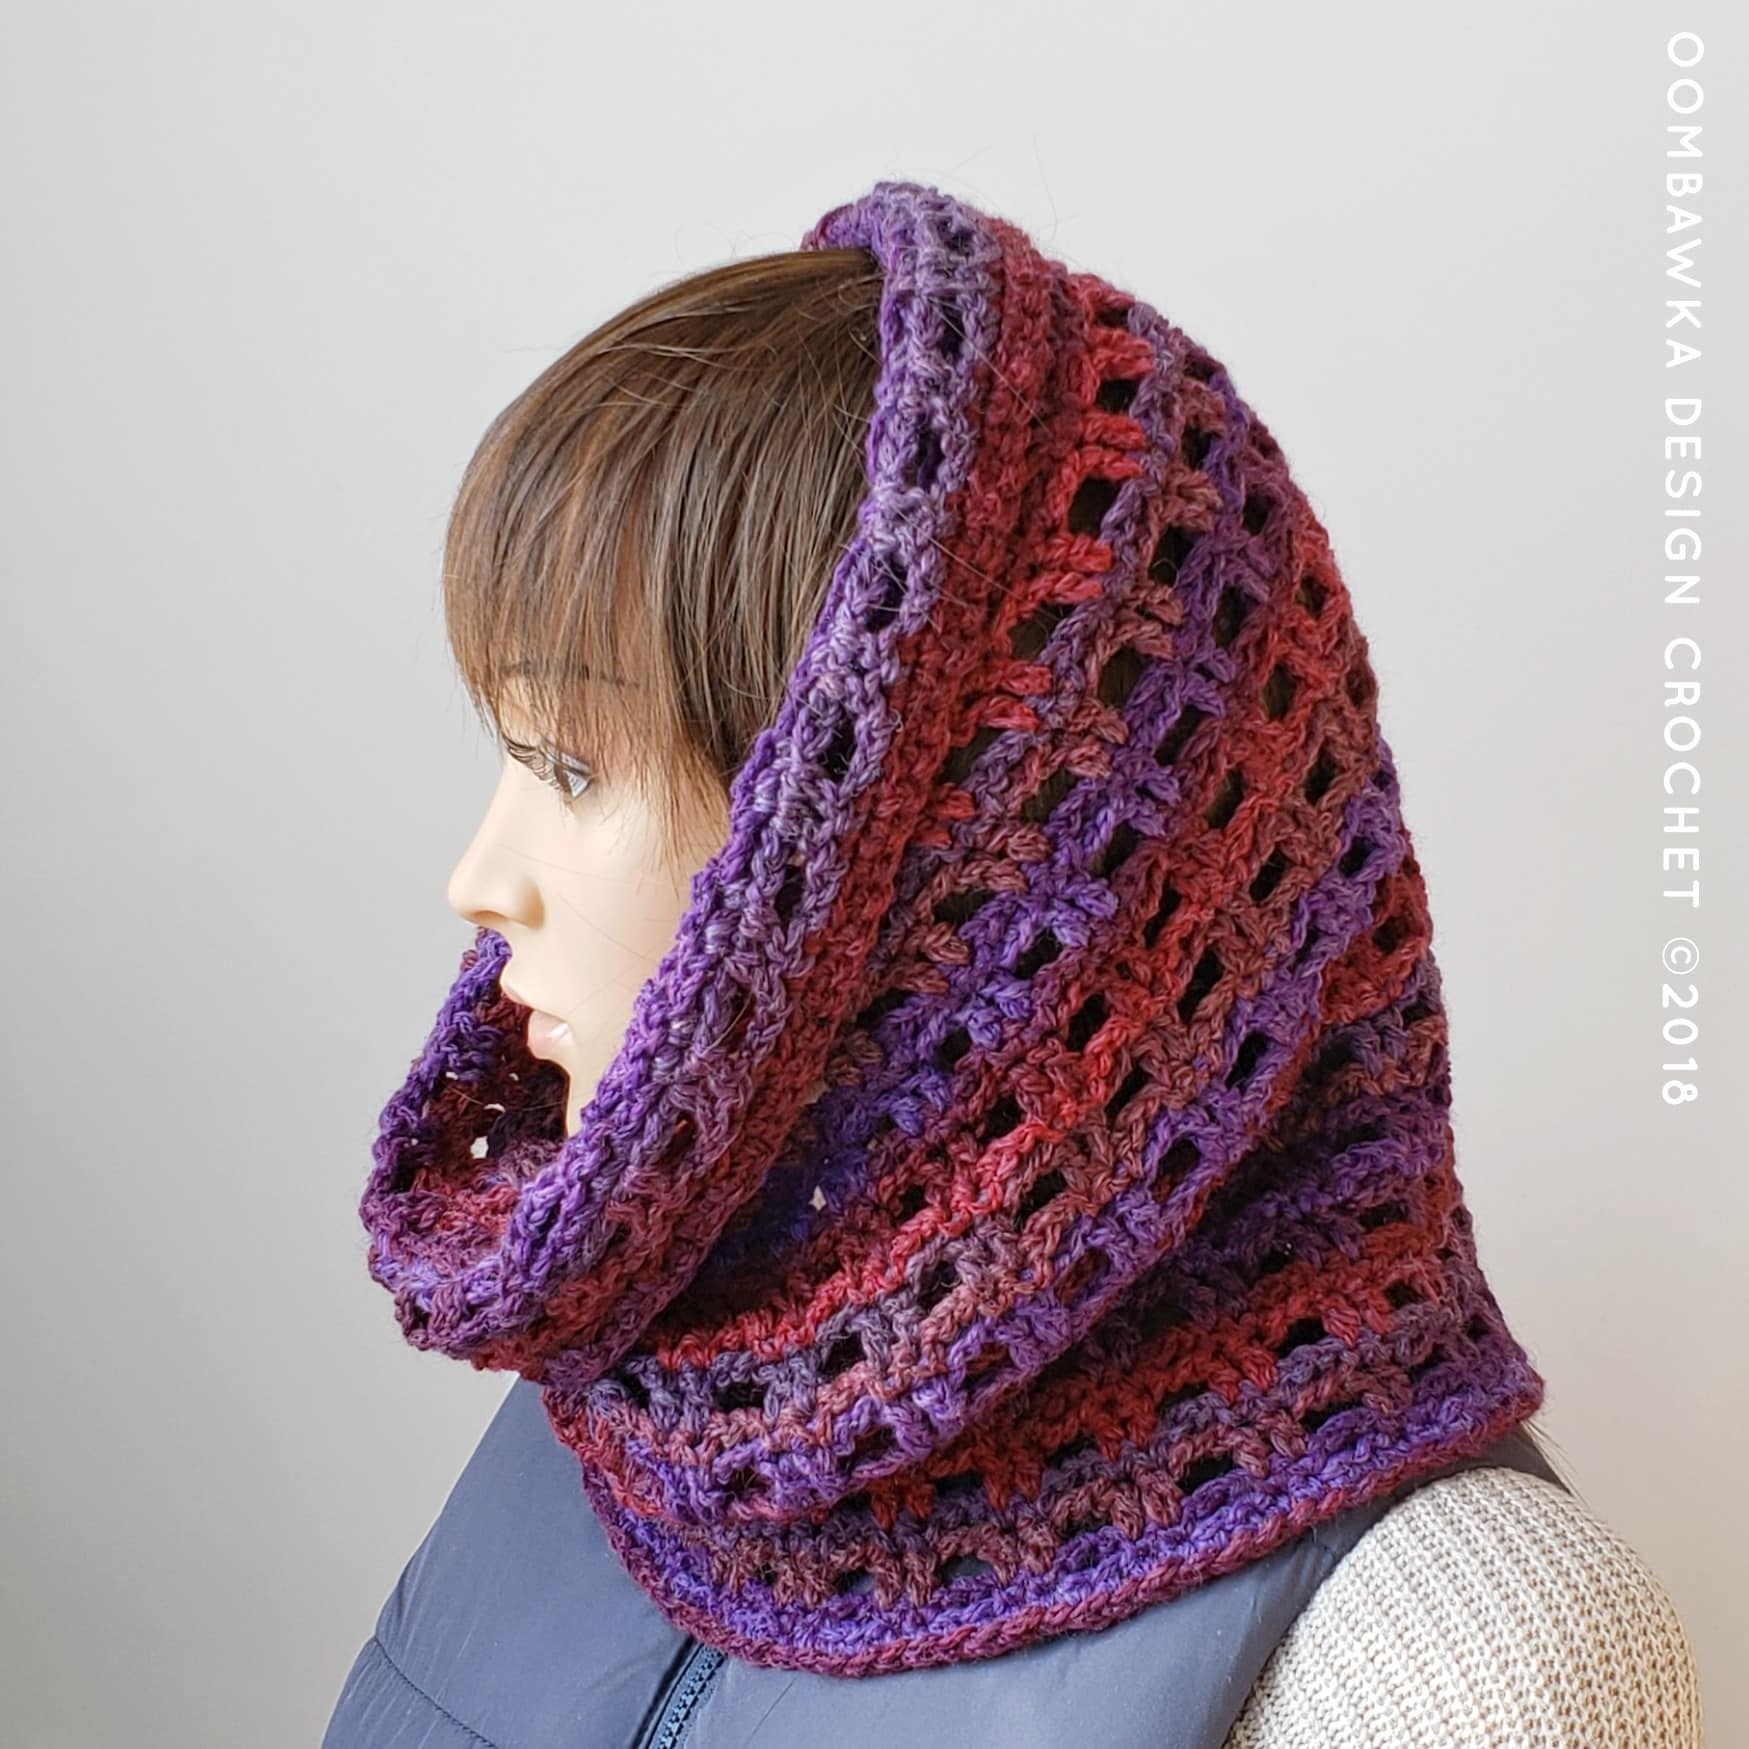 Viola Cowl Pattern February Scarf of the Month Club 2019 Pattern Oombawka Design Crochet